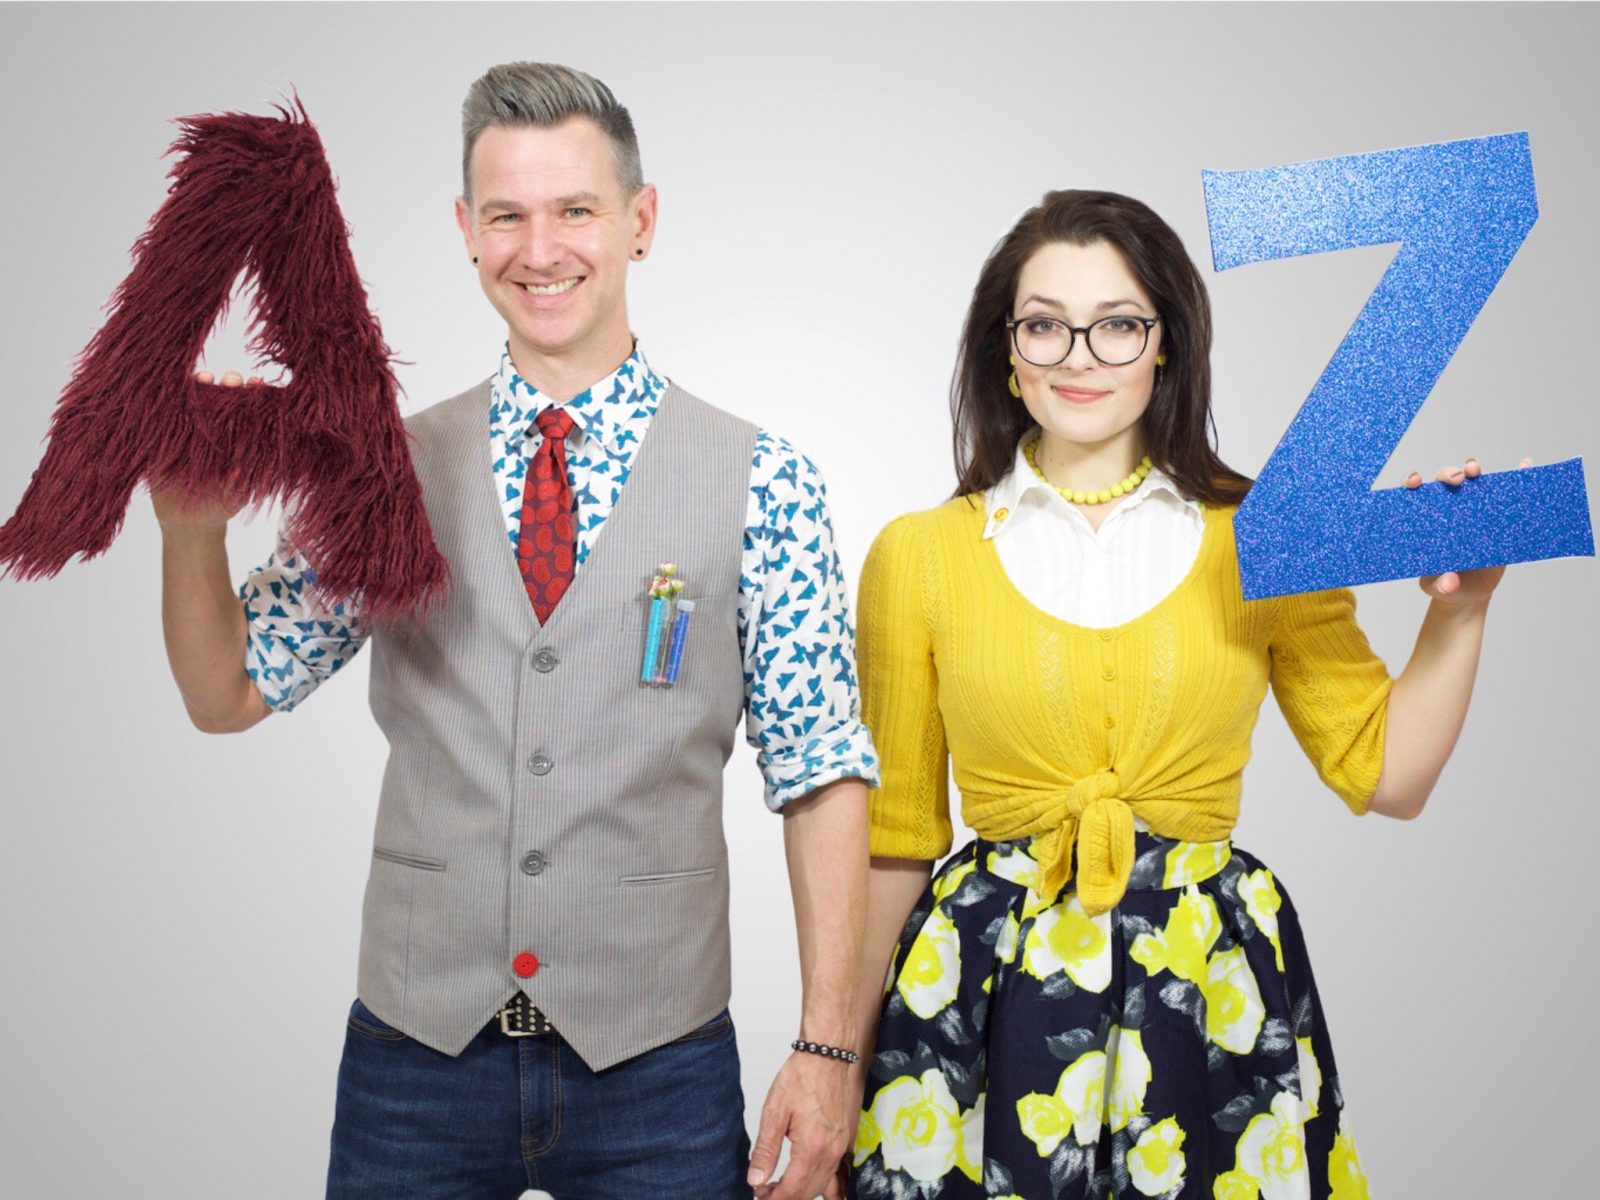 Professors Noel Edge and Lexi Con in The Alphabet of Awesome Science